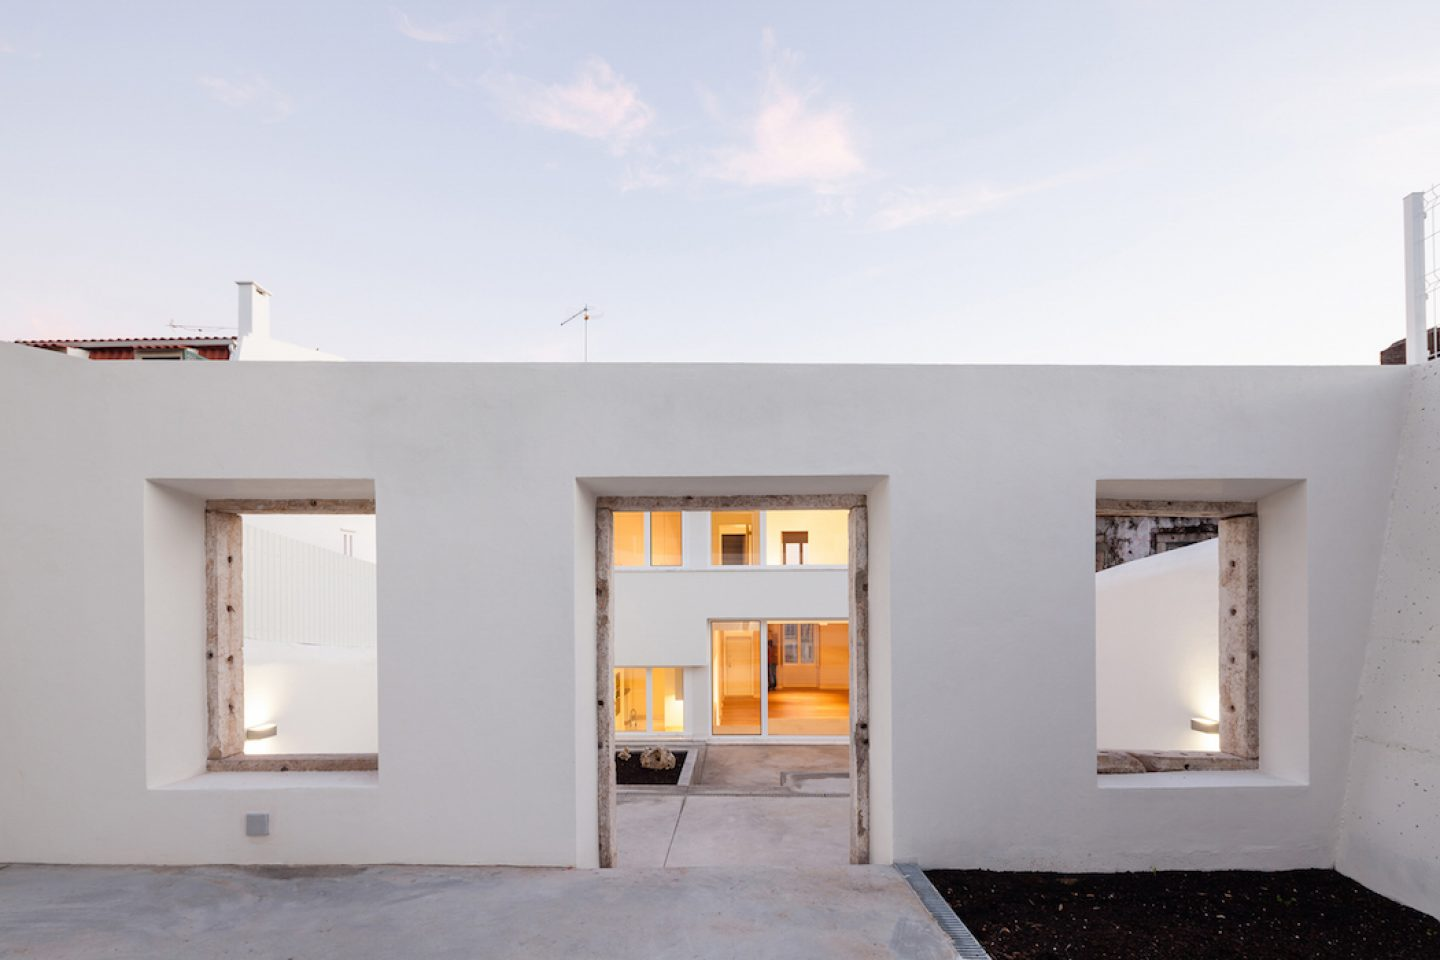 CAIS / House Refurbishment in Ajuda / Lisboa, Portugal / 2015